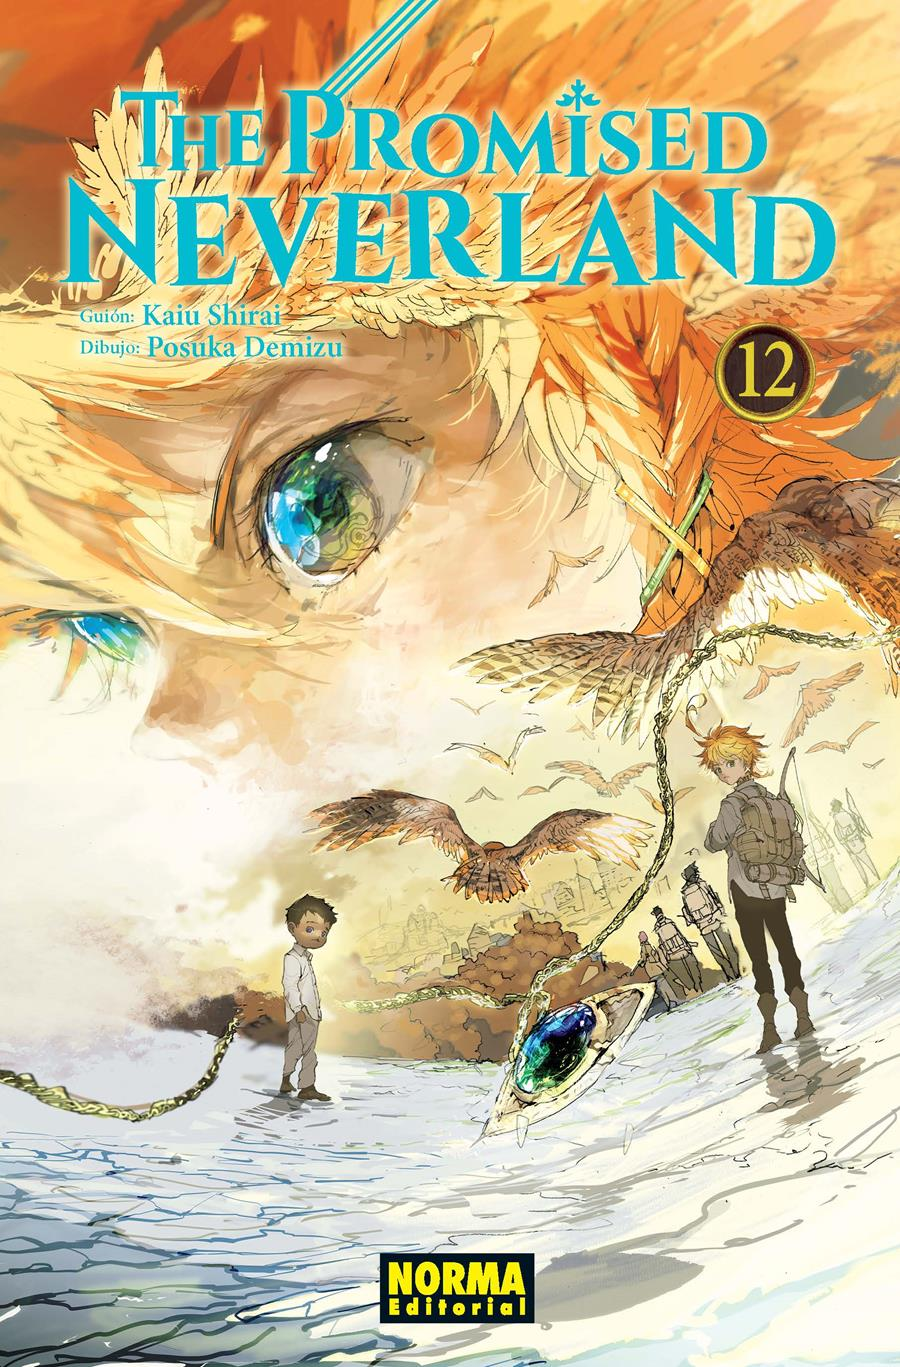 The promised neverland 12 | N0720-NOR25 | Kaiu Shirai, Posuka Demizu | Terra de Còmic - Tu tienda de cómics online especializada en cómics, manga y merchandising